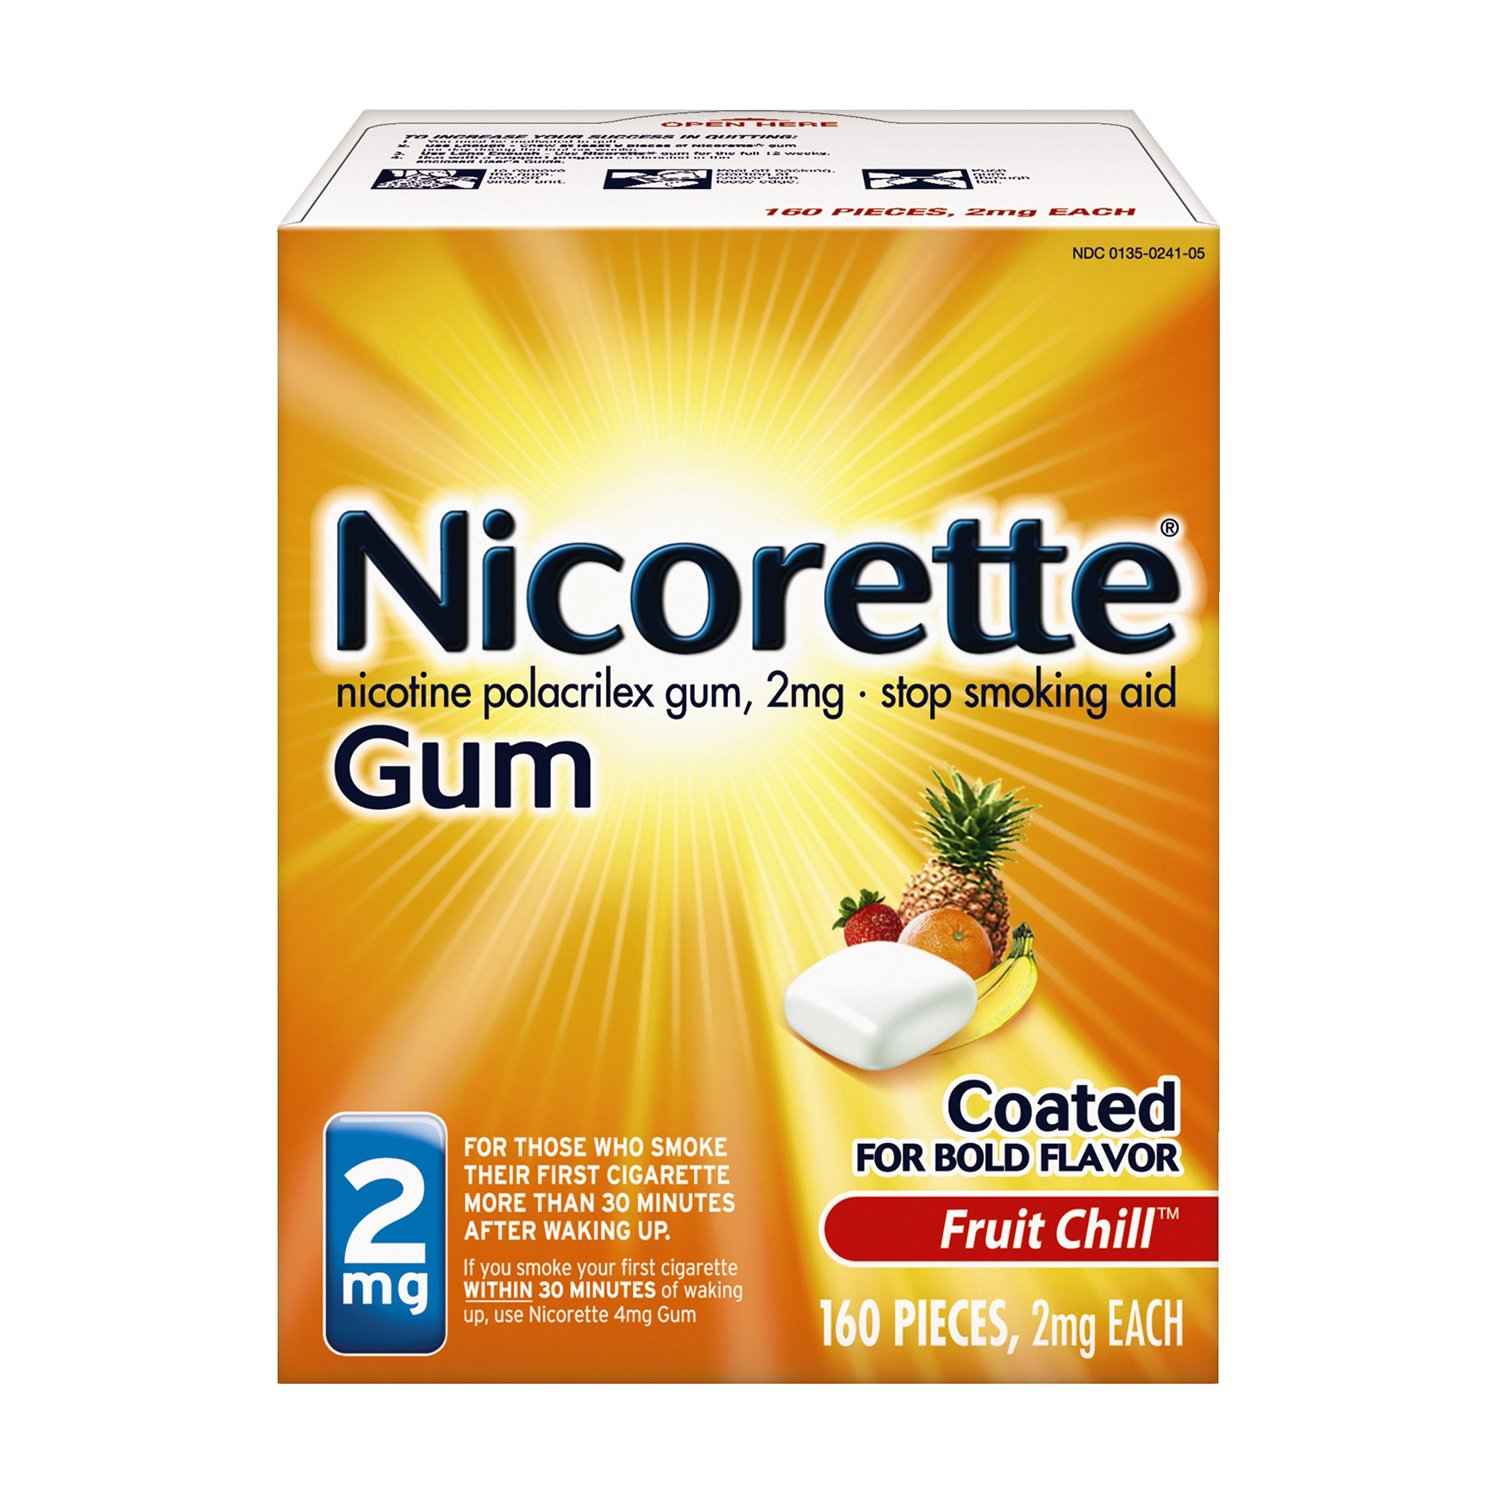 Nicorette Nicotine Gum to Stop Smoking, 2mg, Fruit Chill, 160 Count